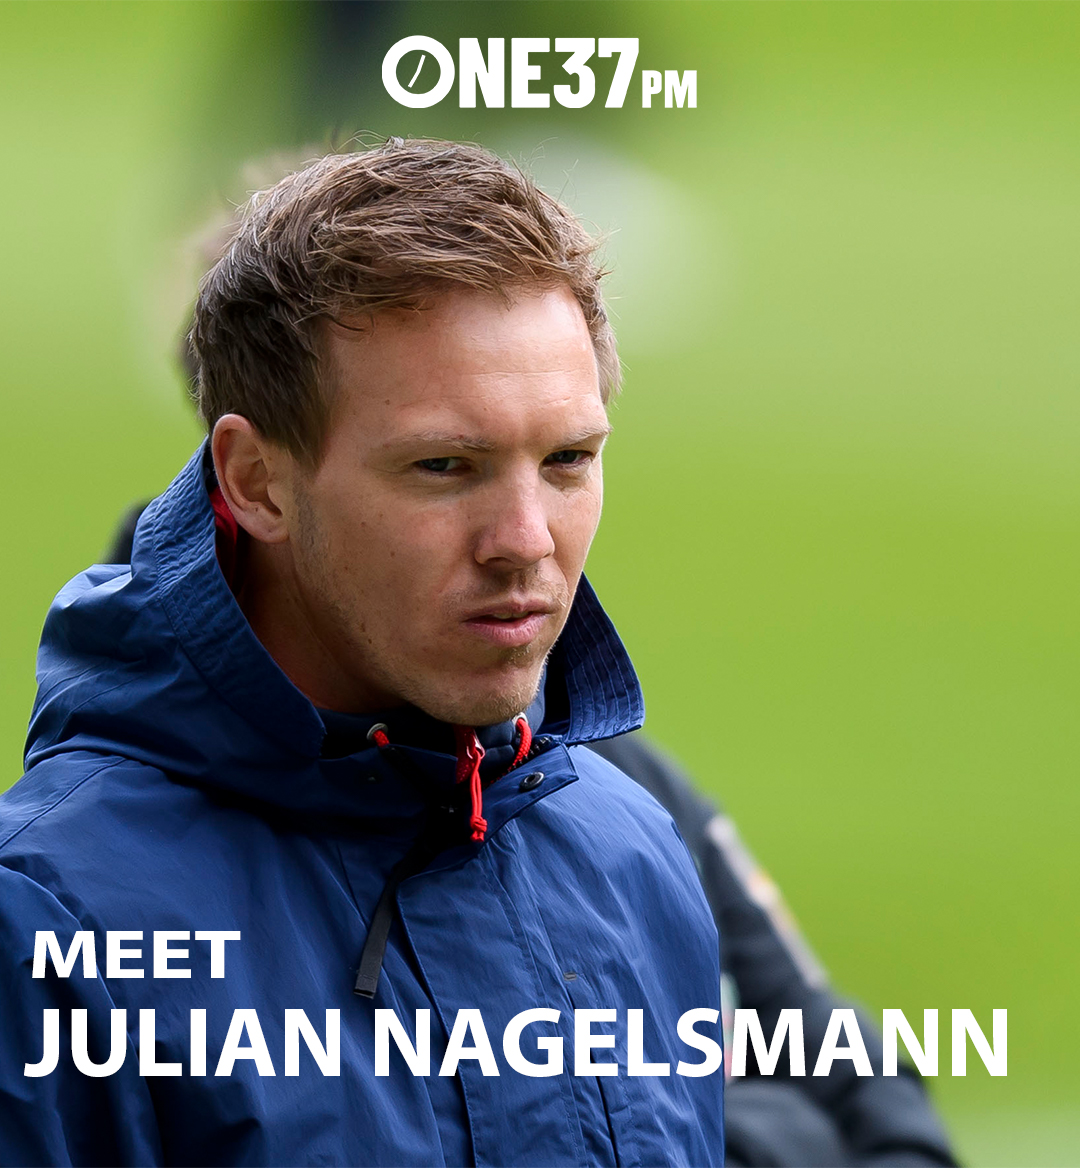 meet julian nagelsmann mobile